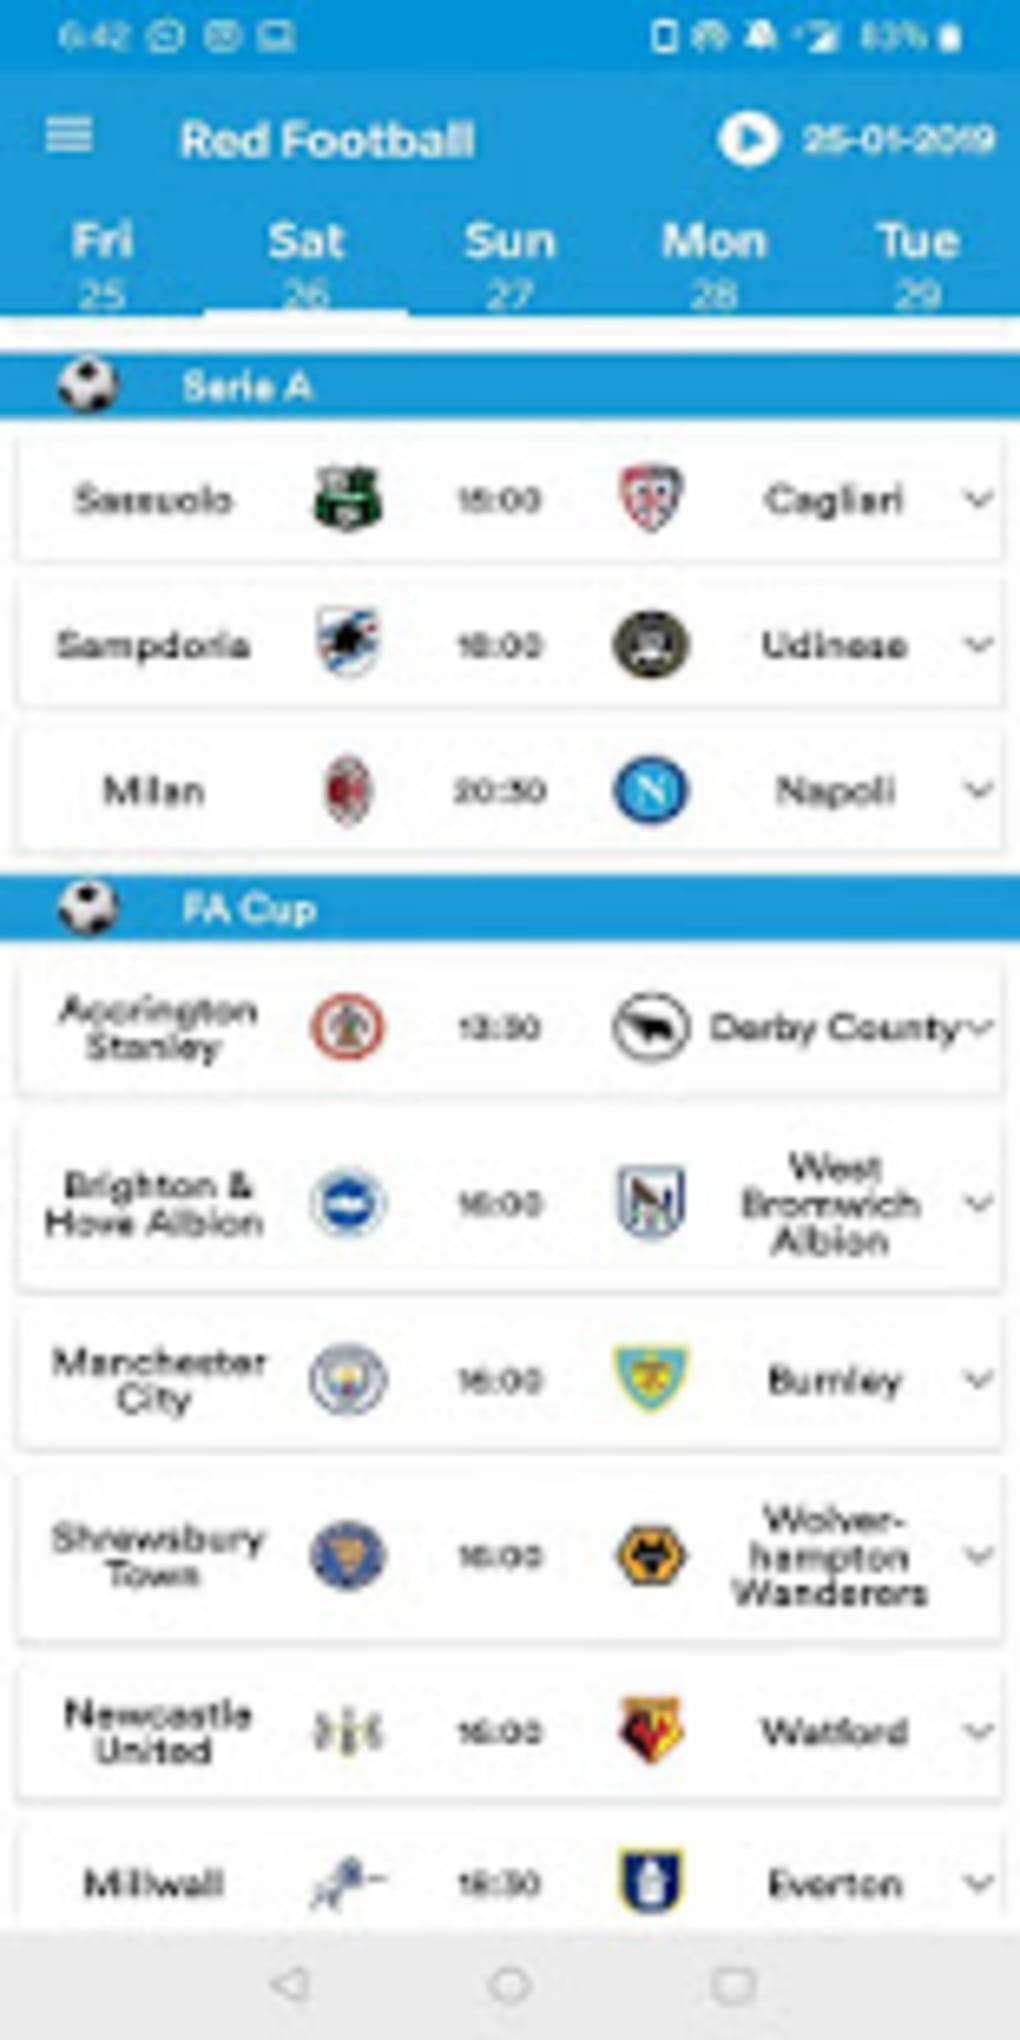 RedFoot: Live Football for Android - Download